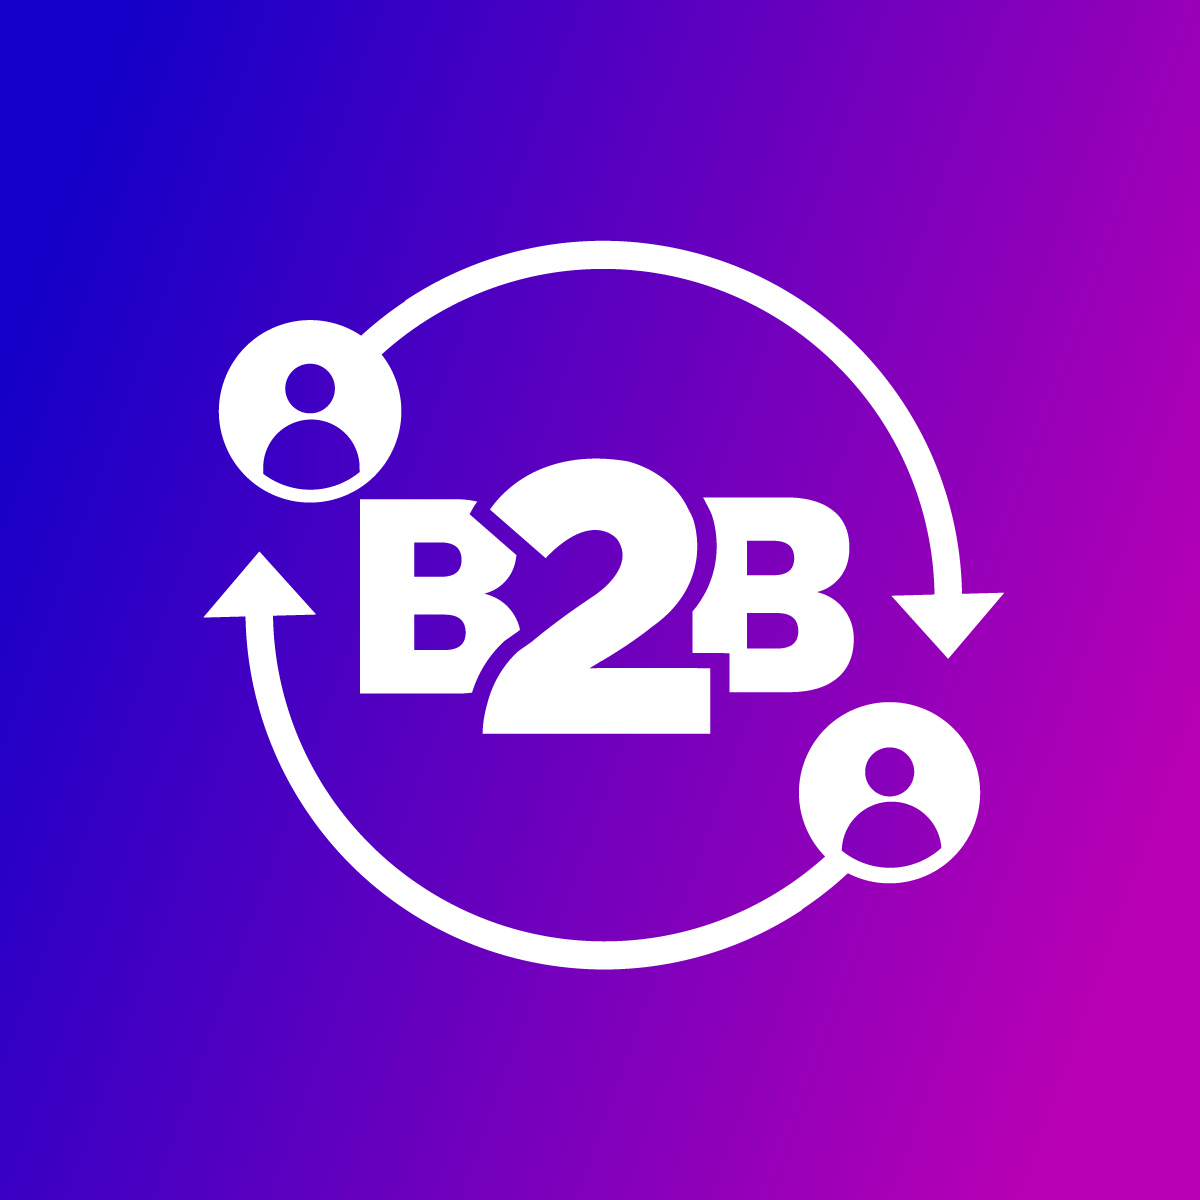 Hire Shopify Experts to integrate B2B Customer Portal app into a Shopify store